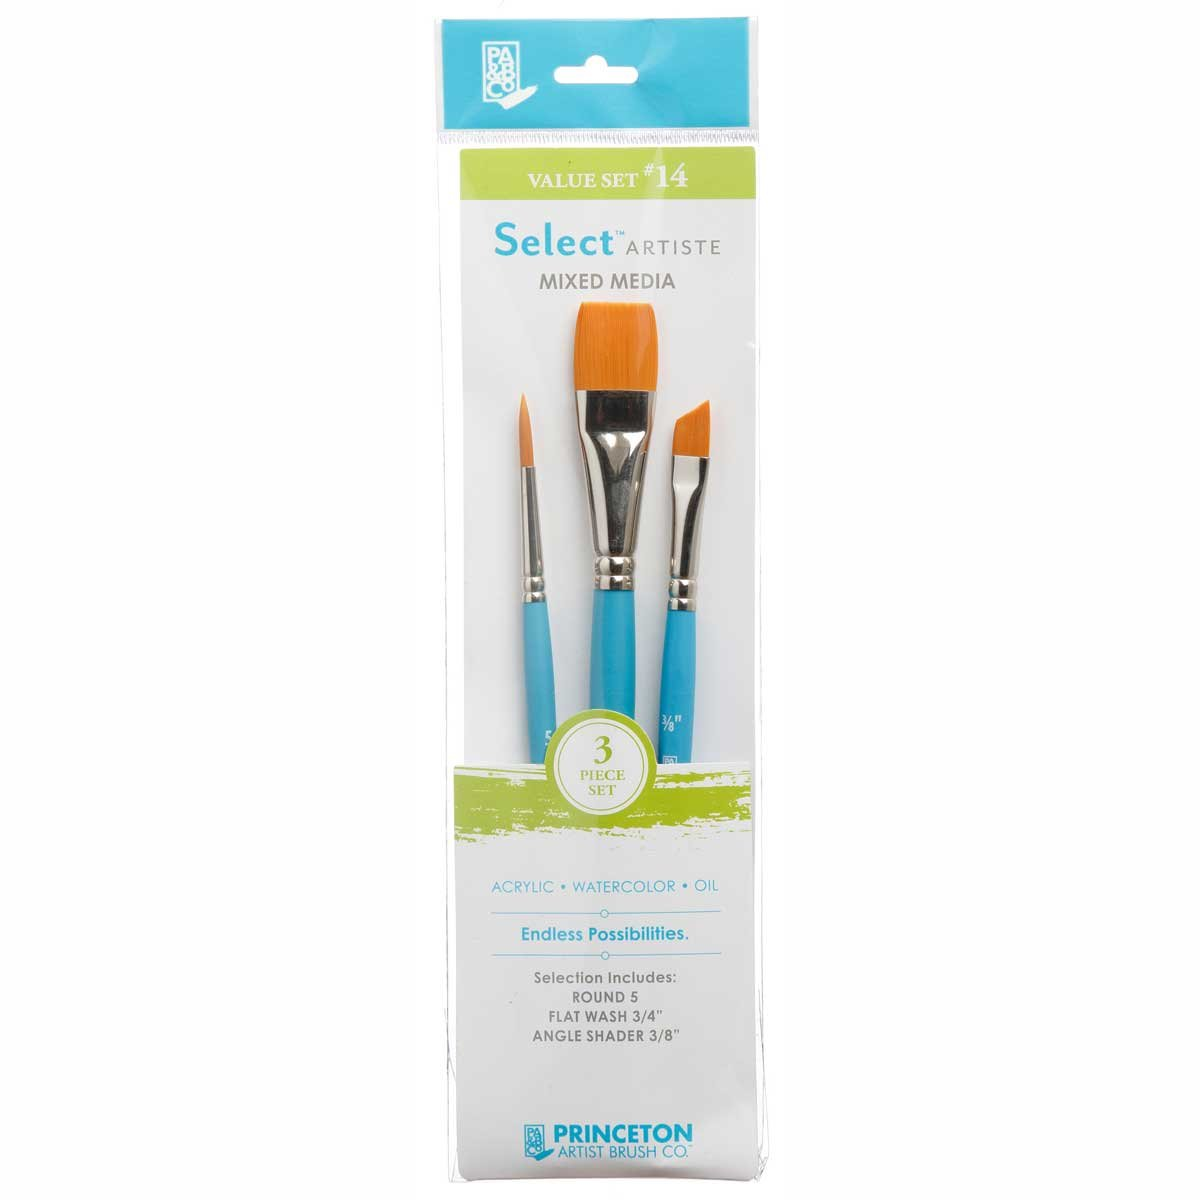 Oil Watercolor Series 3750 Lunar Mop Natural Princeton Select Artiste Size 1//2 Inch Mixed-Media Brushes for Acrylic